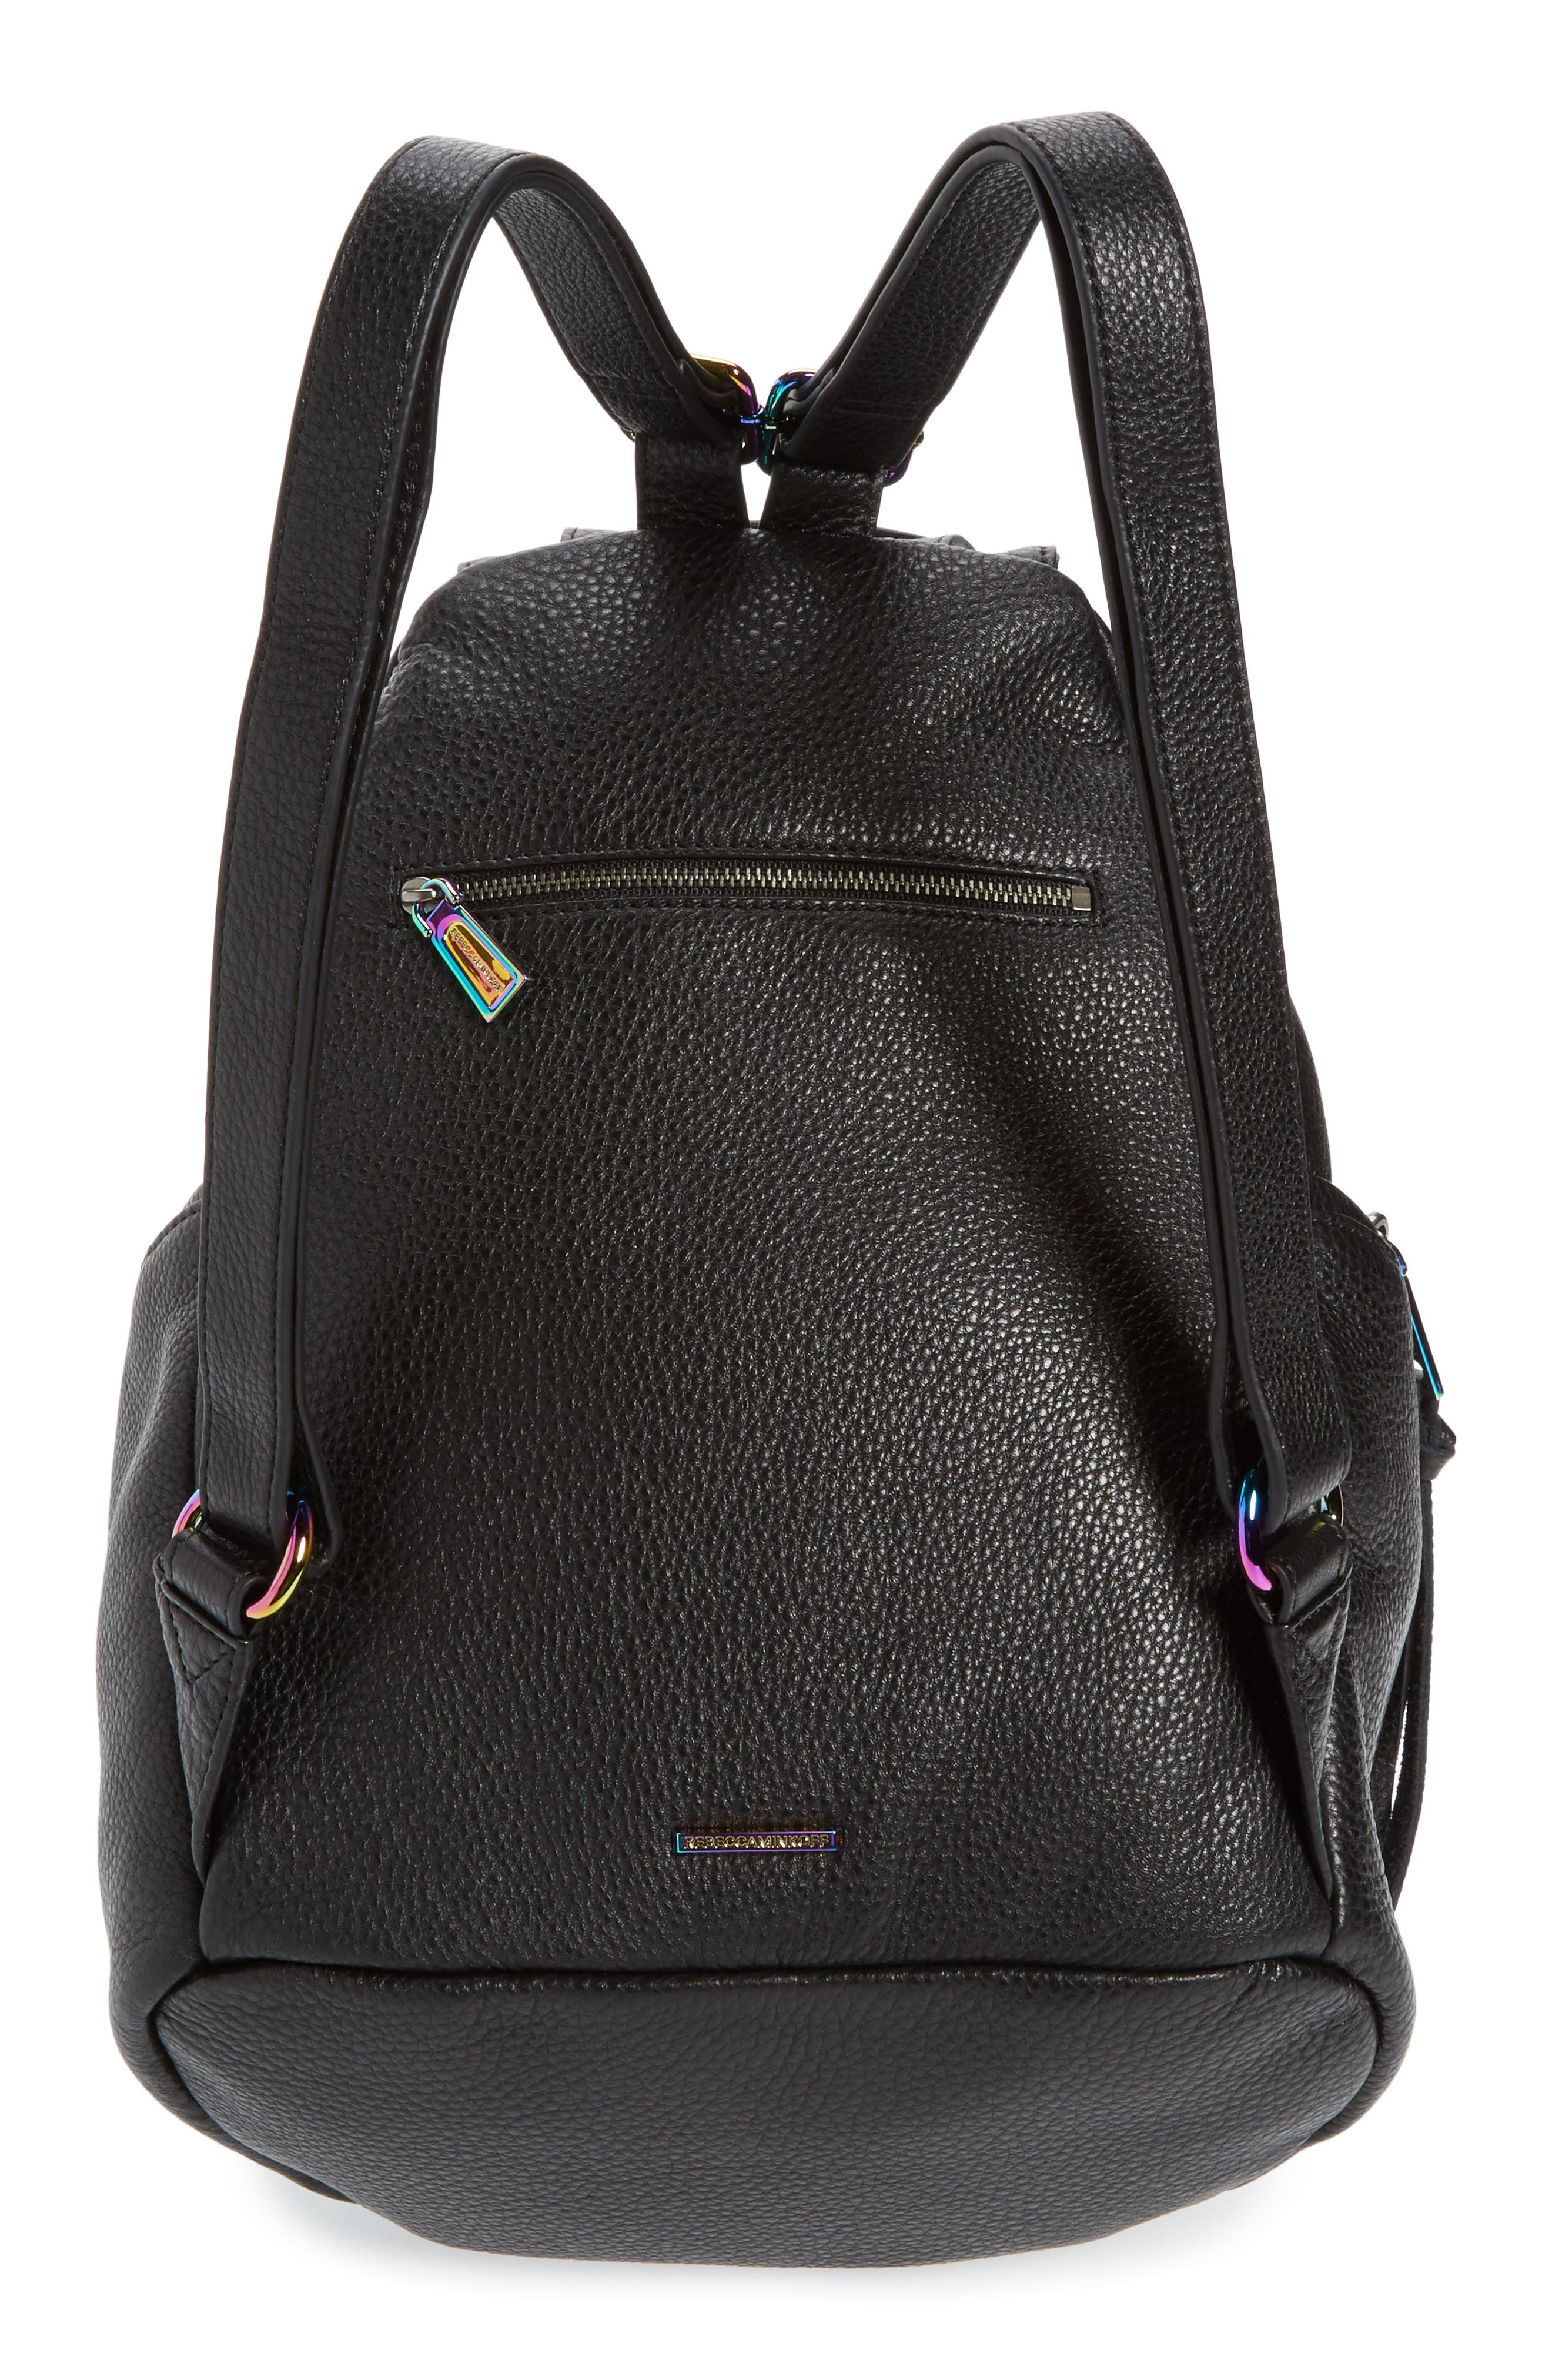 Julian Always On Charging Leather Backpack,                             Alternate thumbnail 3, color,                             001